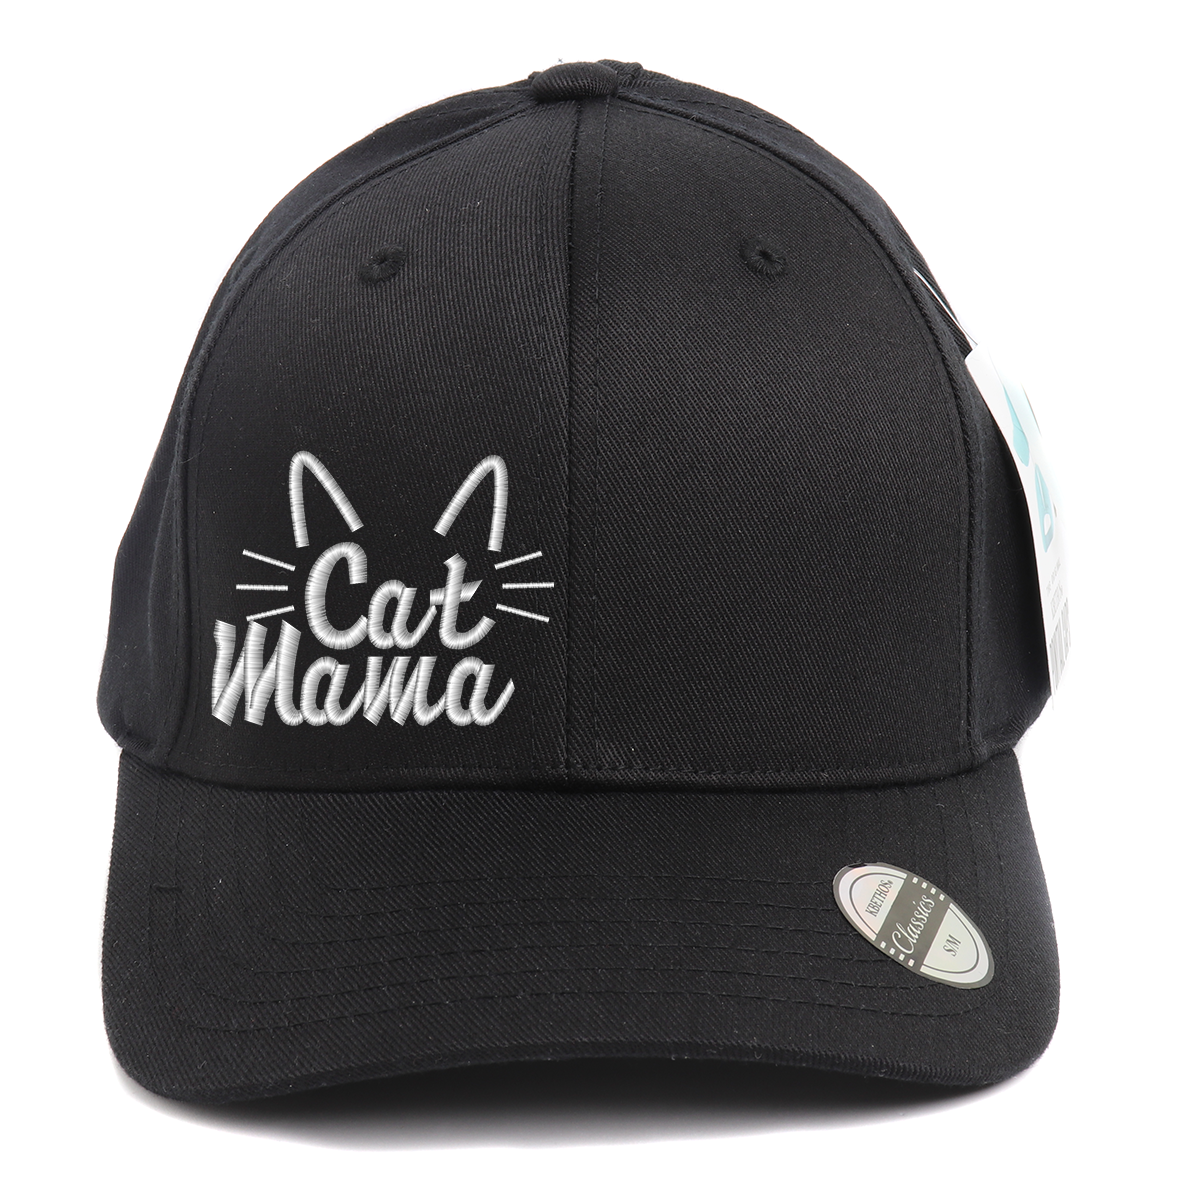 Cat Mama Ponytail Spandex Headband Hat